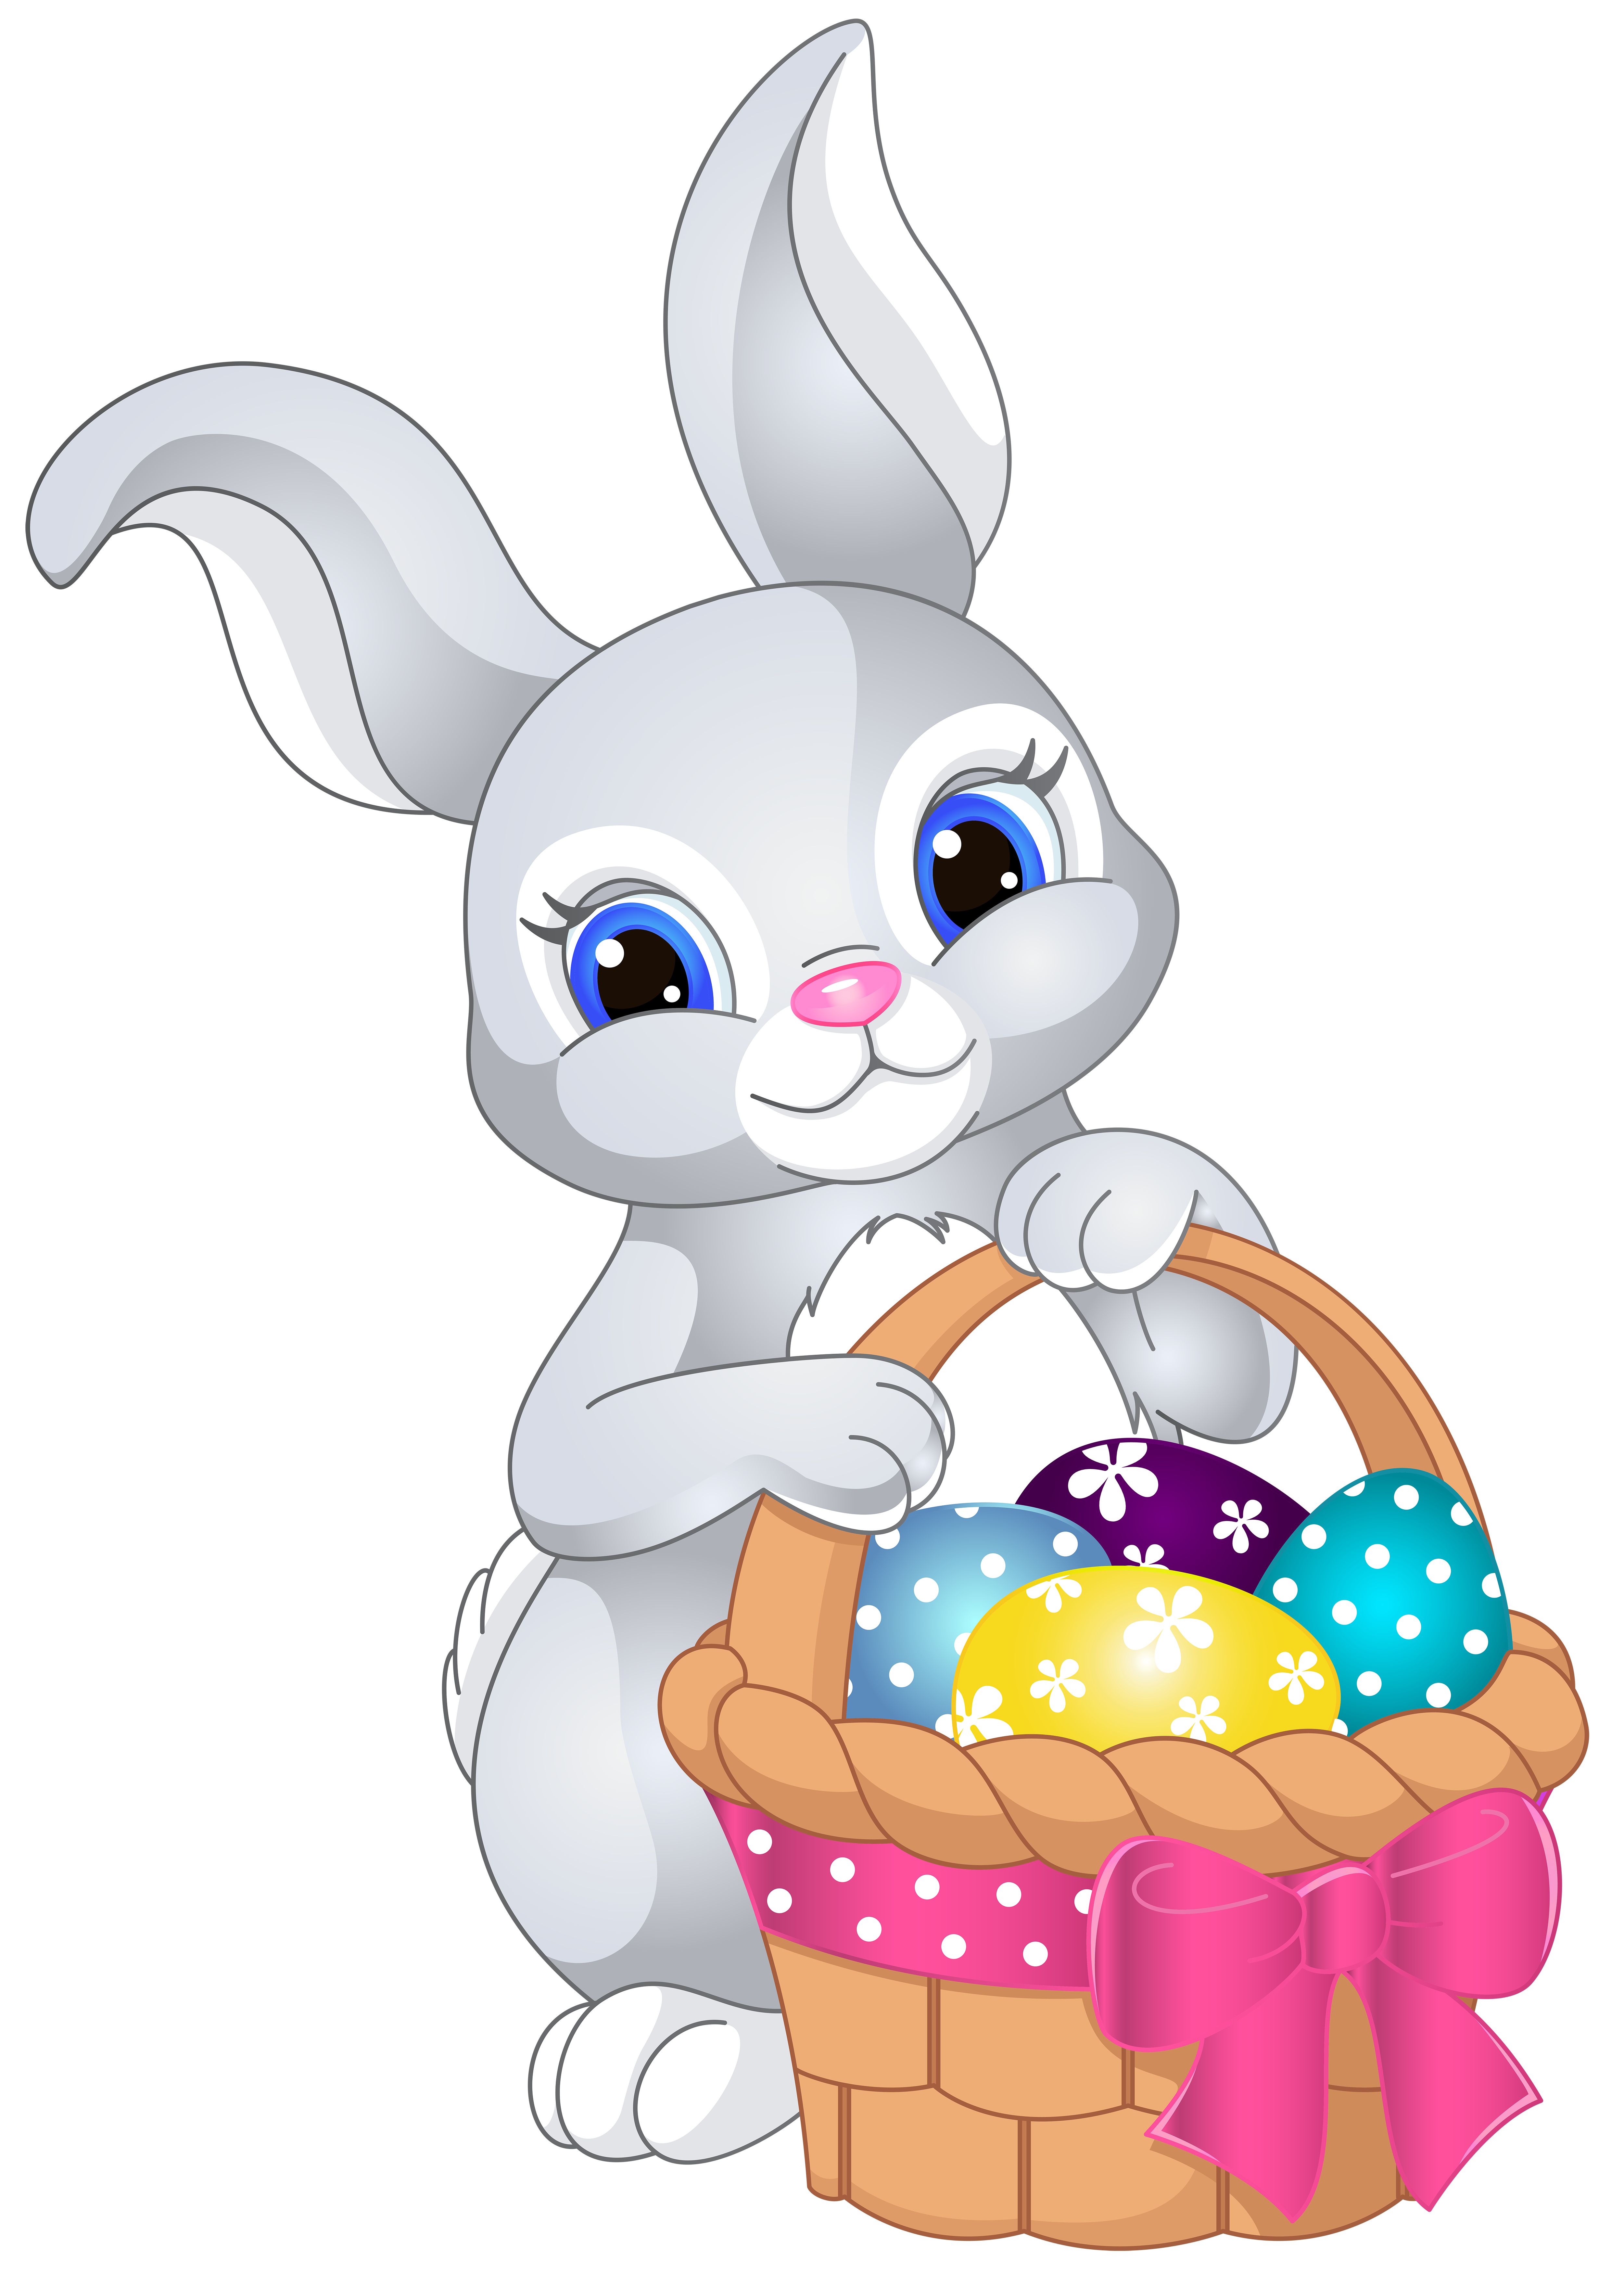 graphic Bunny religious free on. Books clipart easter